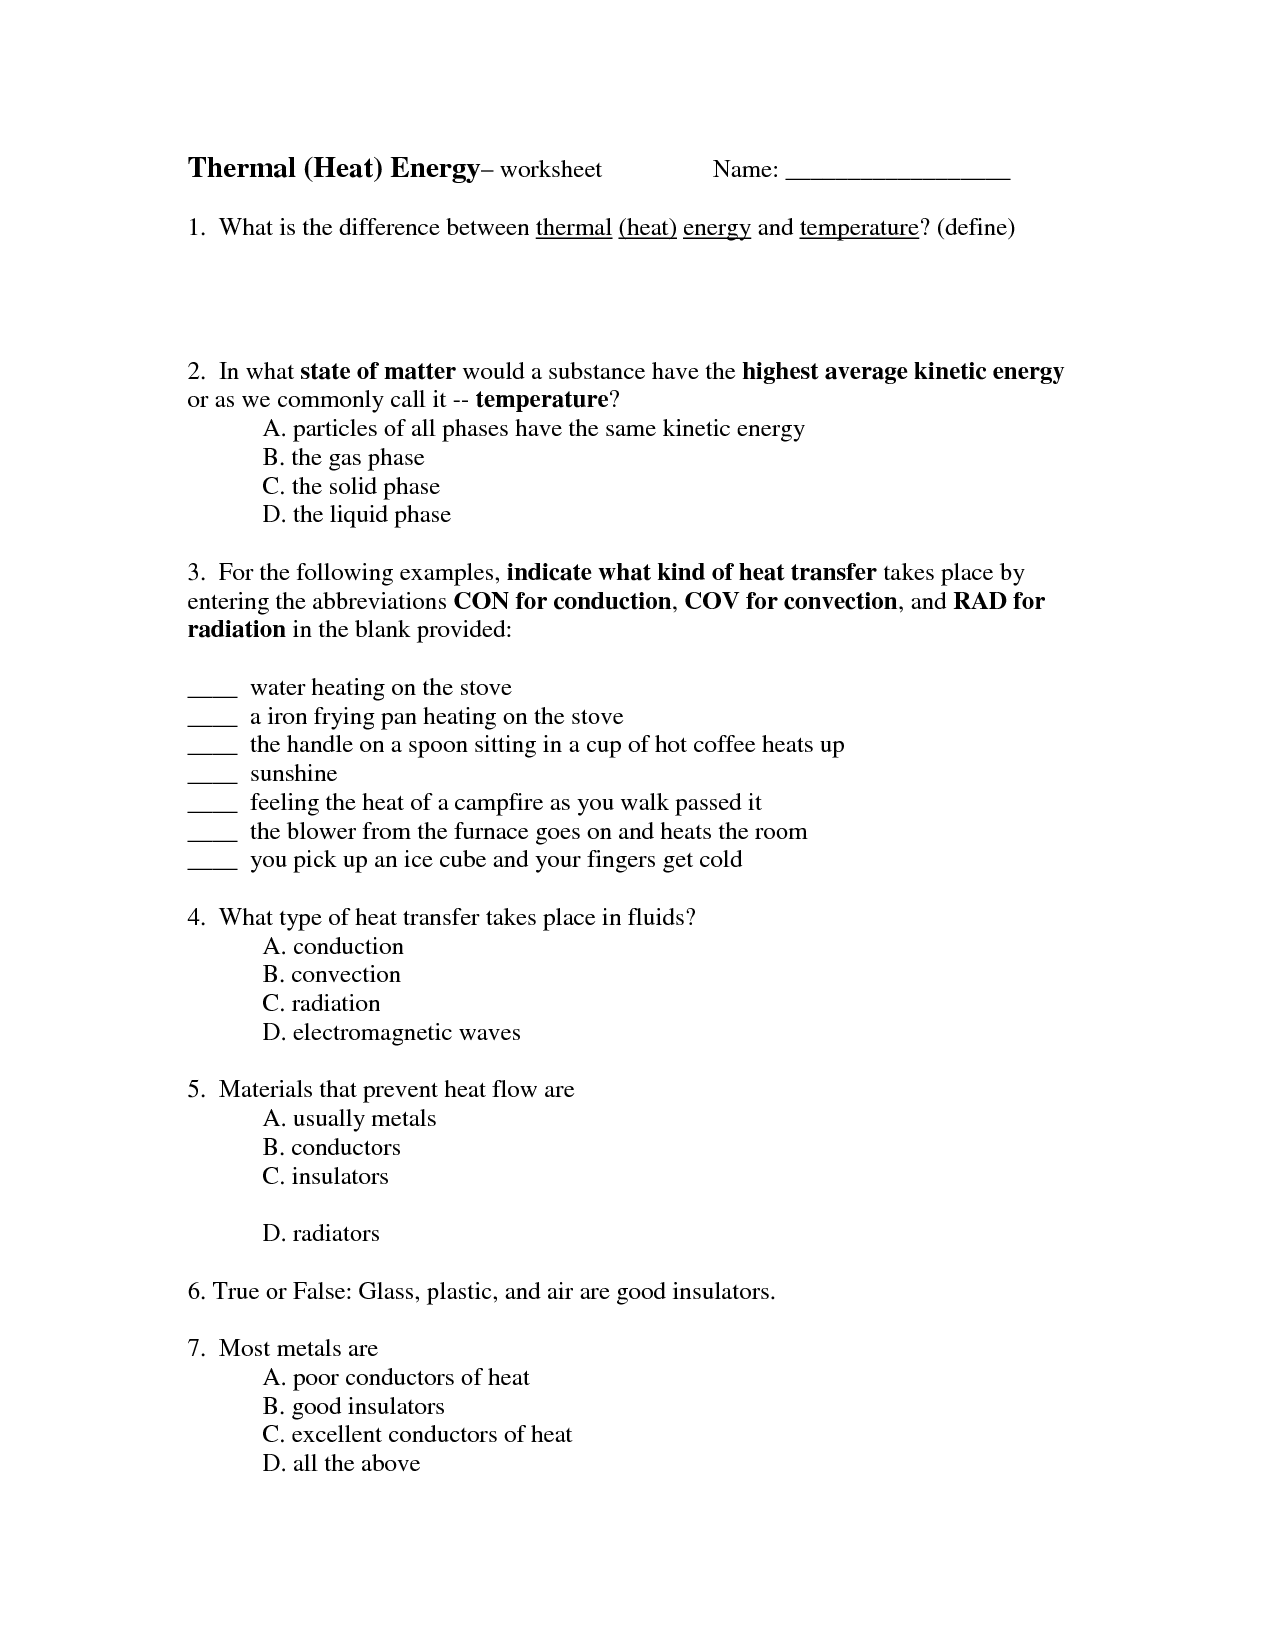 Worksheet Light And Sound Waves Virtual Lab Answers